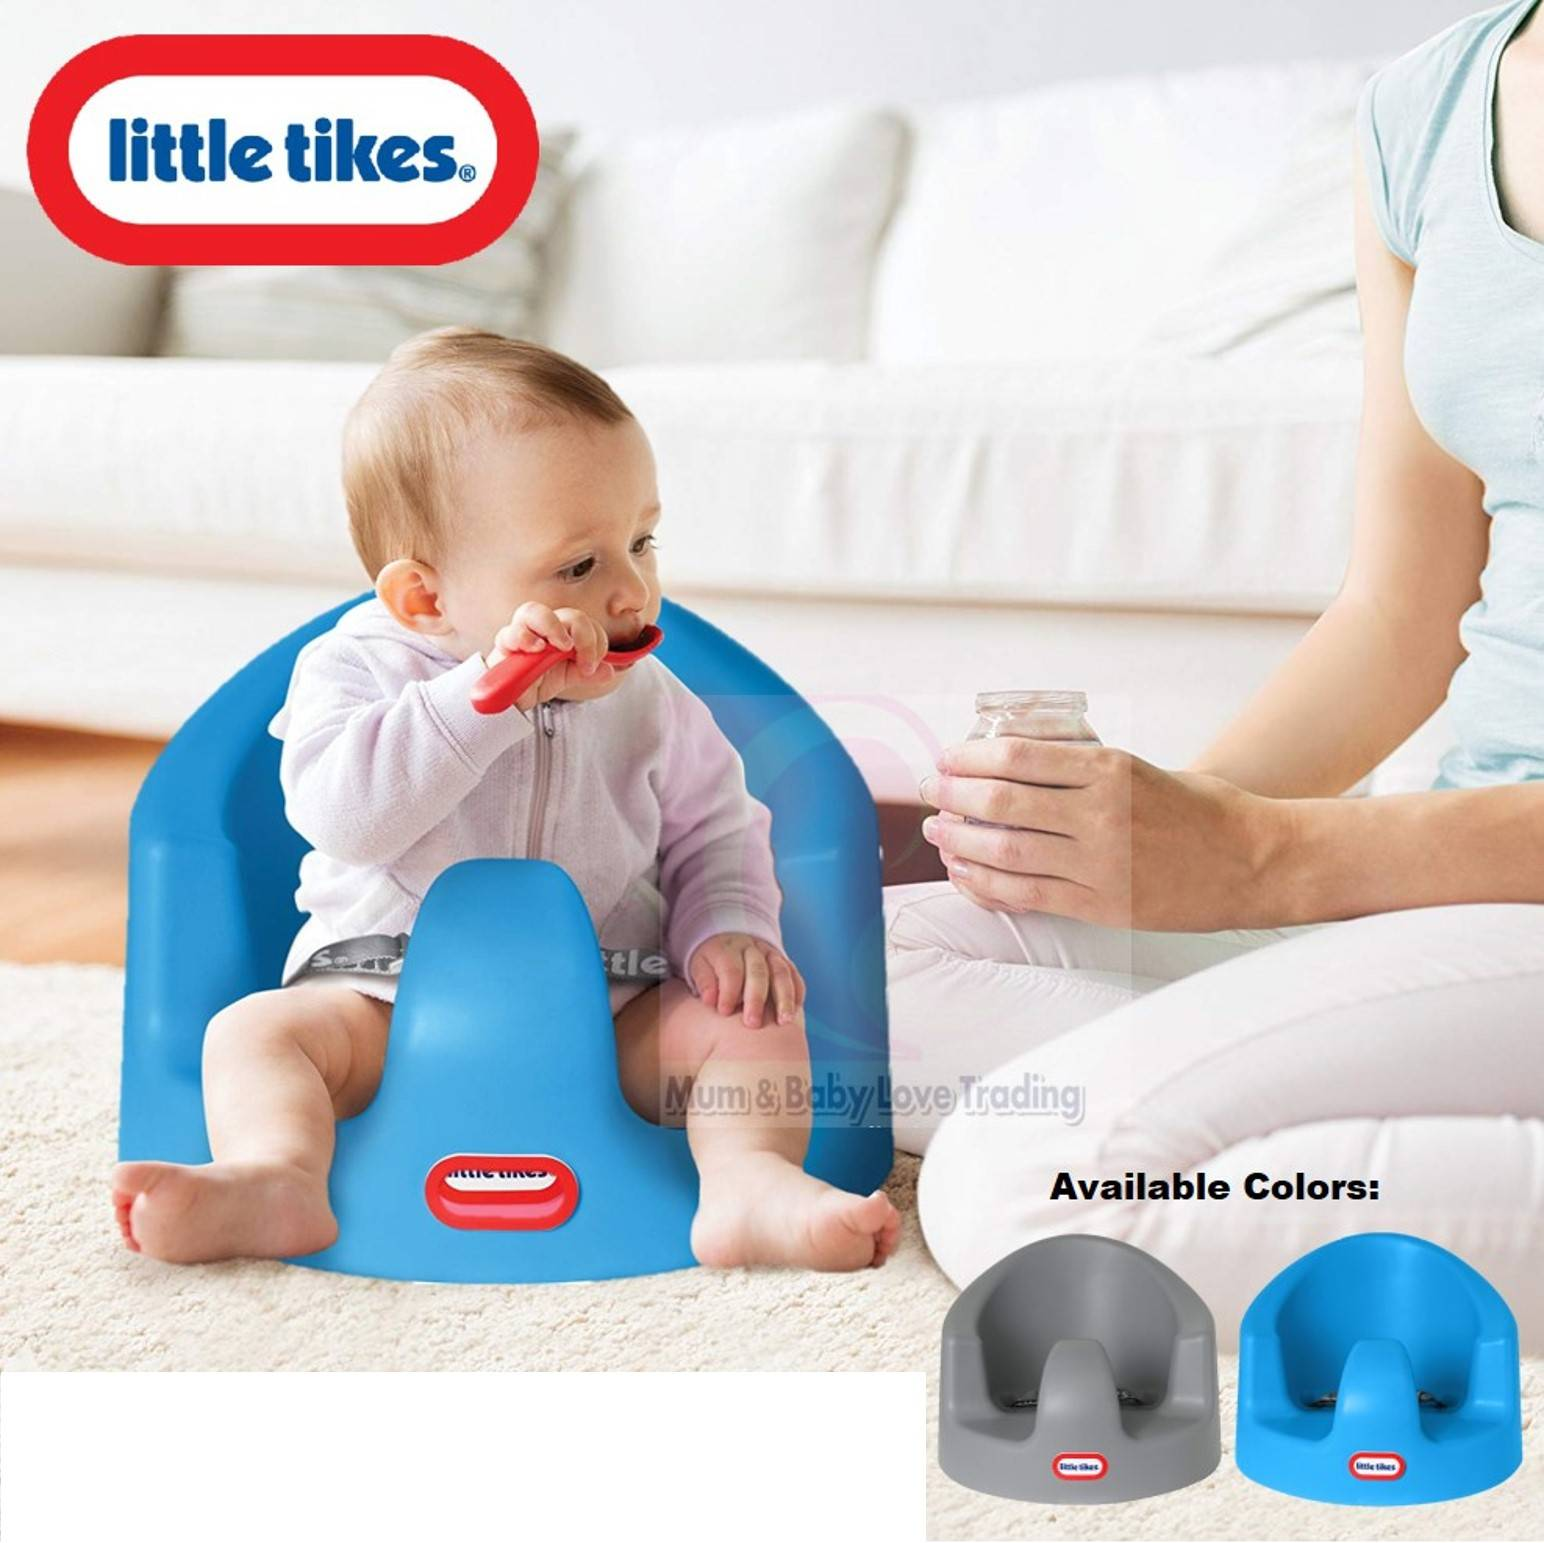 Little Tikes My First Seat Infant Floor Foam Seat 4 Months